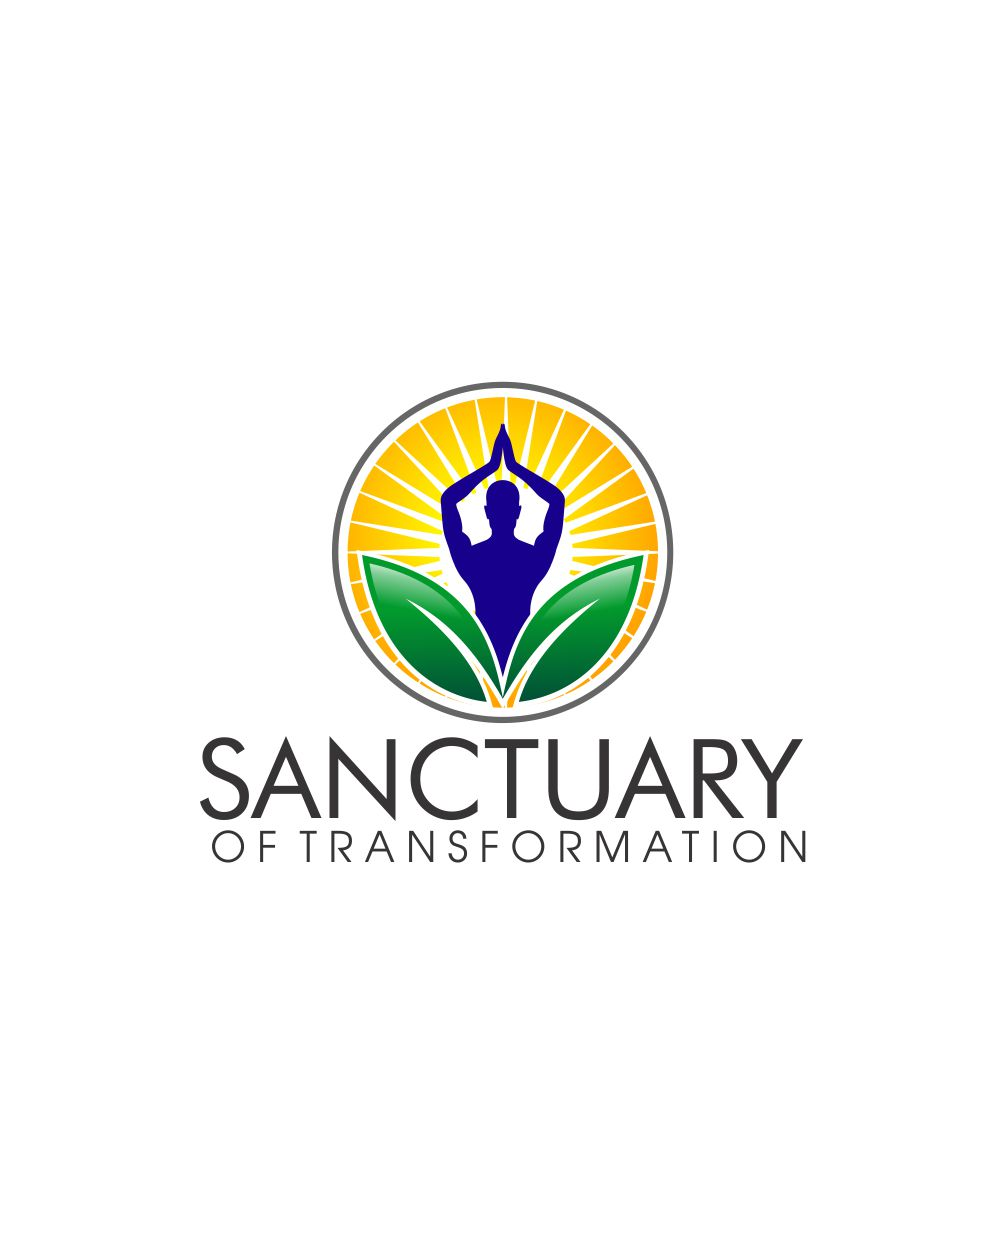 Logo Design by Raymond Garcia - Entry No. 27 in the Logo Design Contest Fun Logo Design for Sanctuary of Transformation.